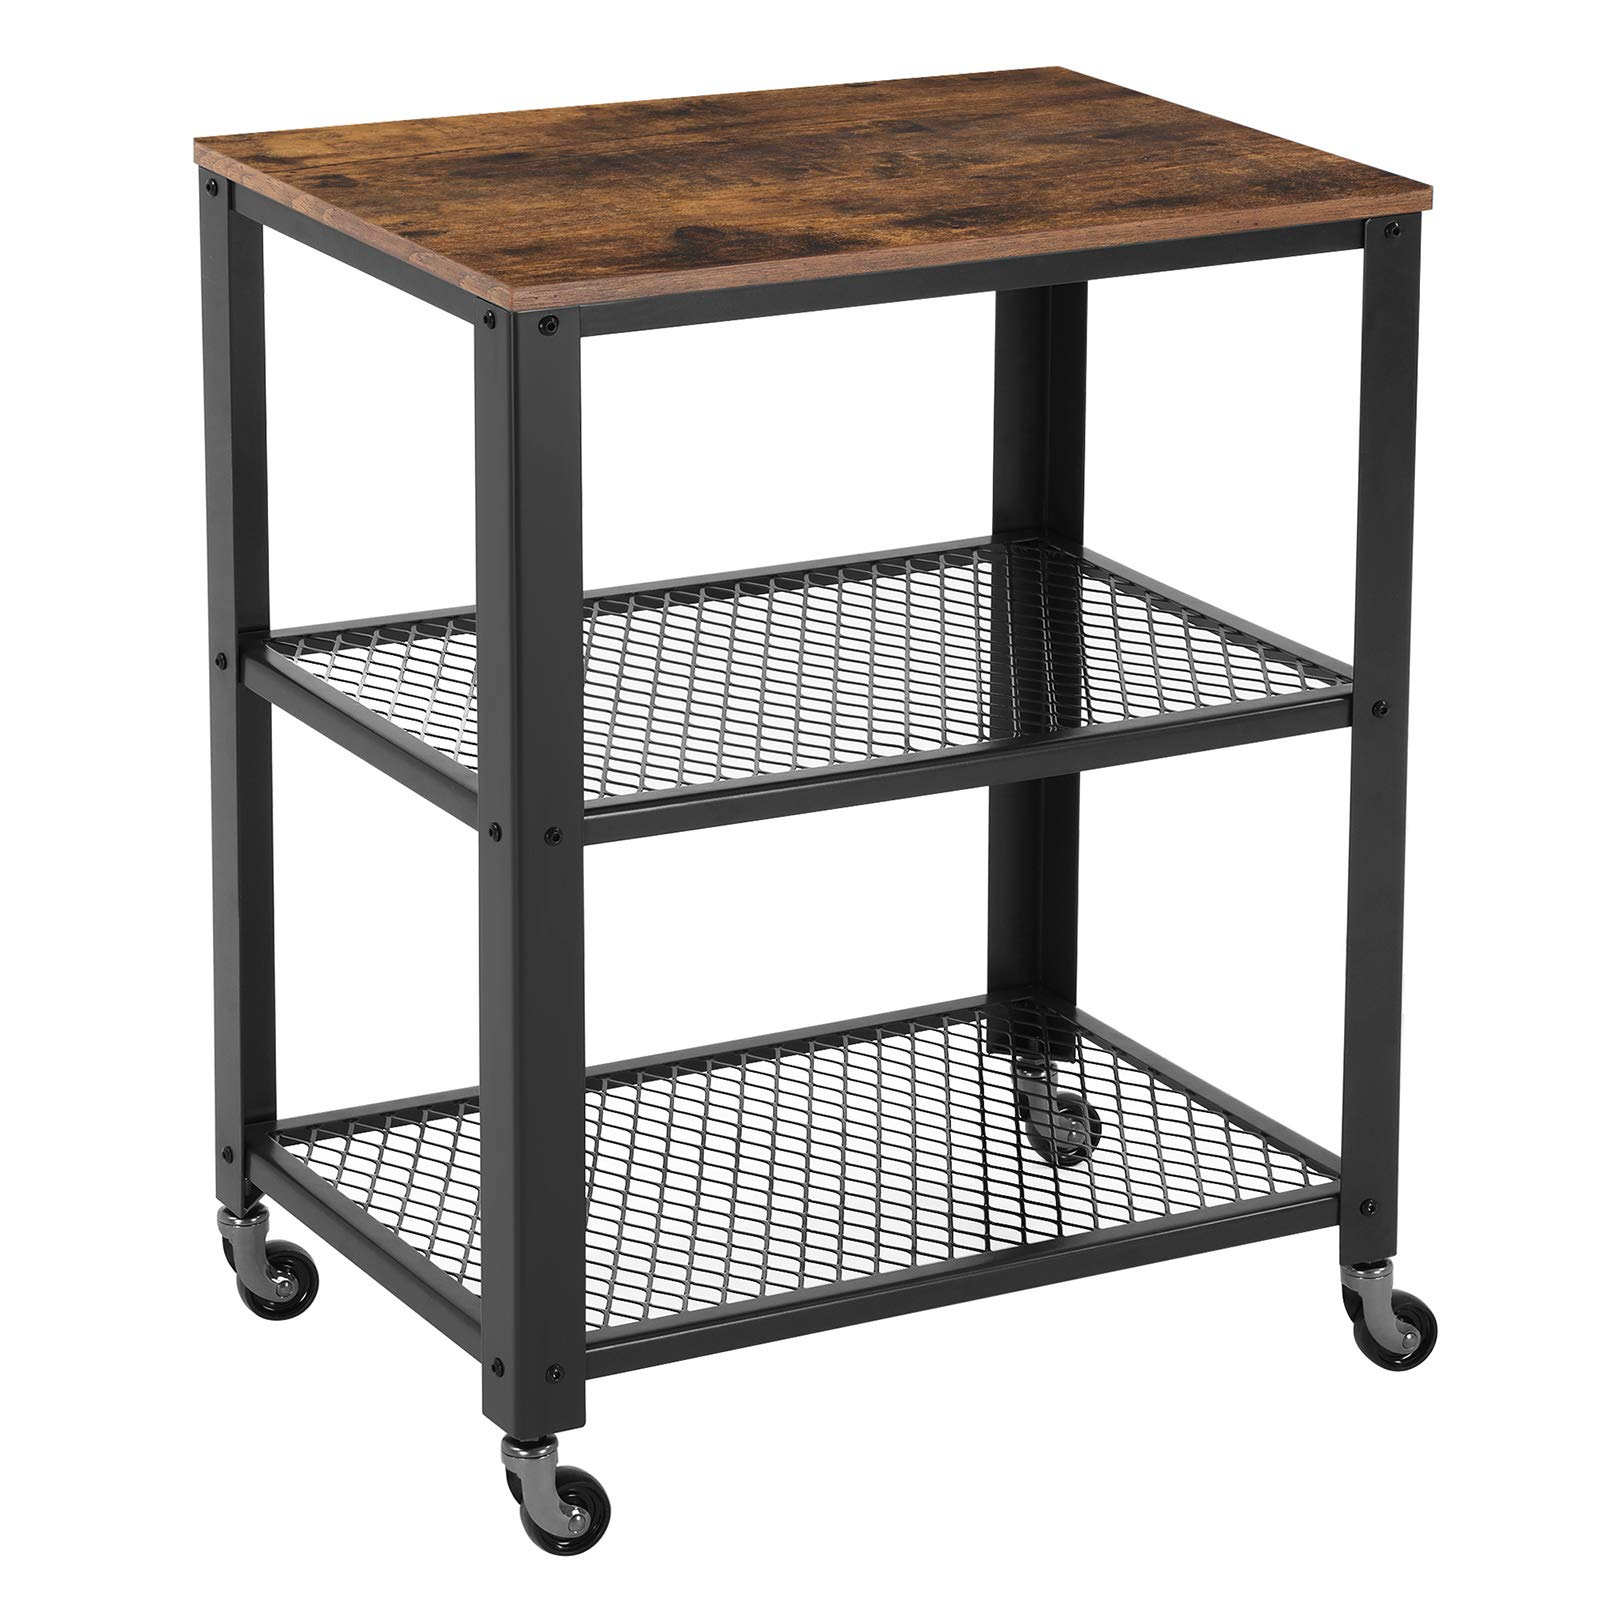 VASAGLE Industrial Serving Cart, 3-Tier Kitchen Utility Cart on Wheels with Storage for Living Room, Wood Look Accent Furniture with Metal Frame ULRC78X by VASAGLE